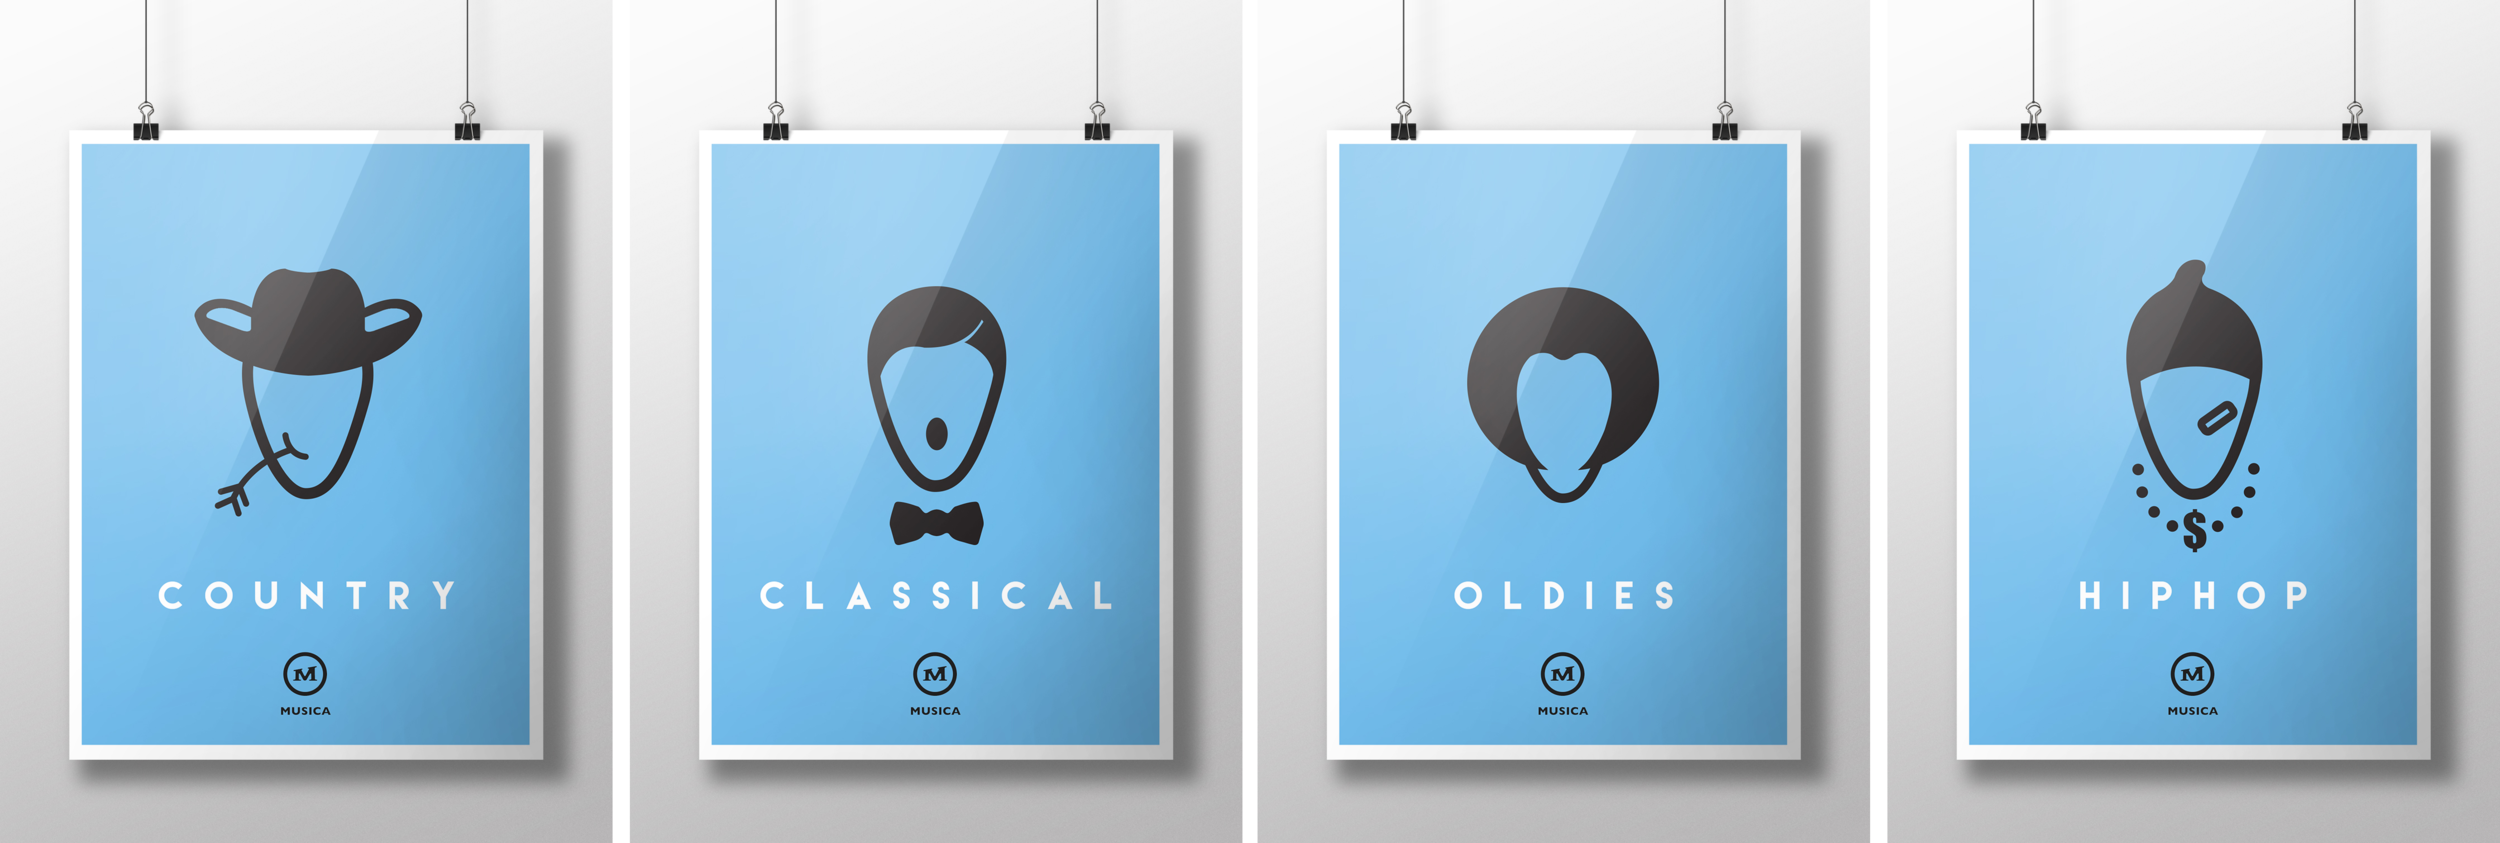 POSTER MUSIC ICONS 03-01.png